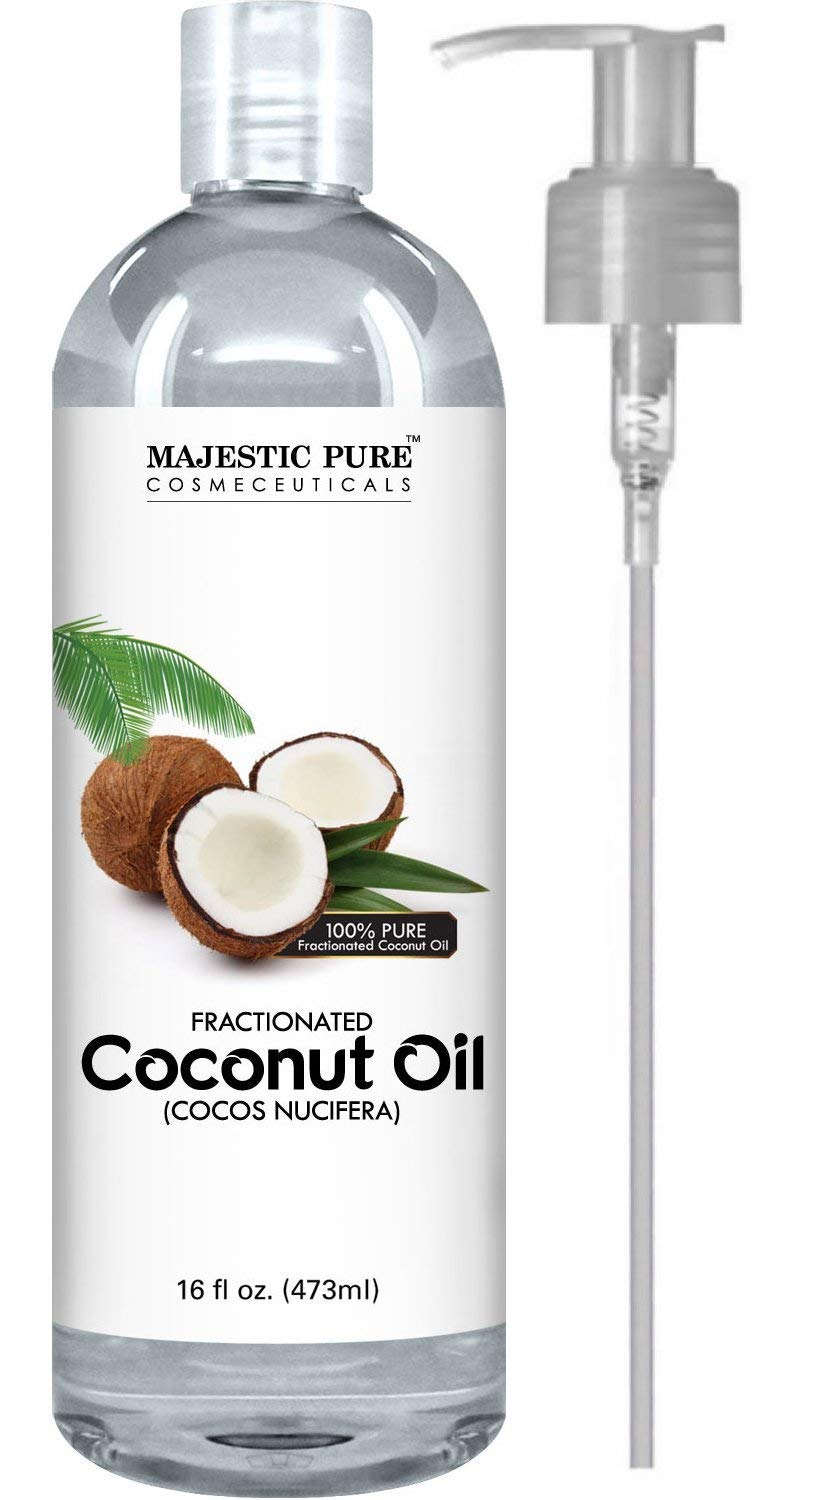 Amazon Com Majestic Pure Fractionated Coconut Oil For Aromatherapy Relaxing Massage Carrier Oil For Diluting Essential Oils Hair Skin Care Benefits Moisturizer Softener 16 Ounces Packaging May Vary Majestic Pure